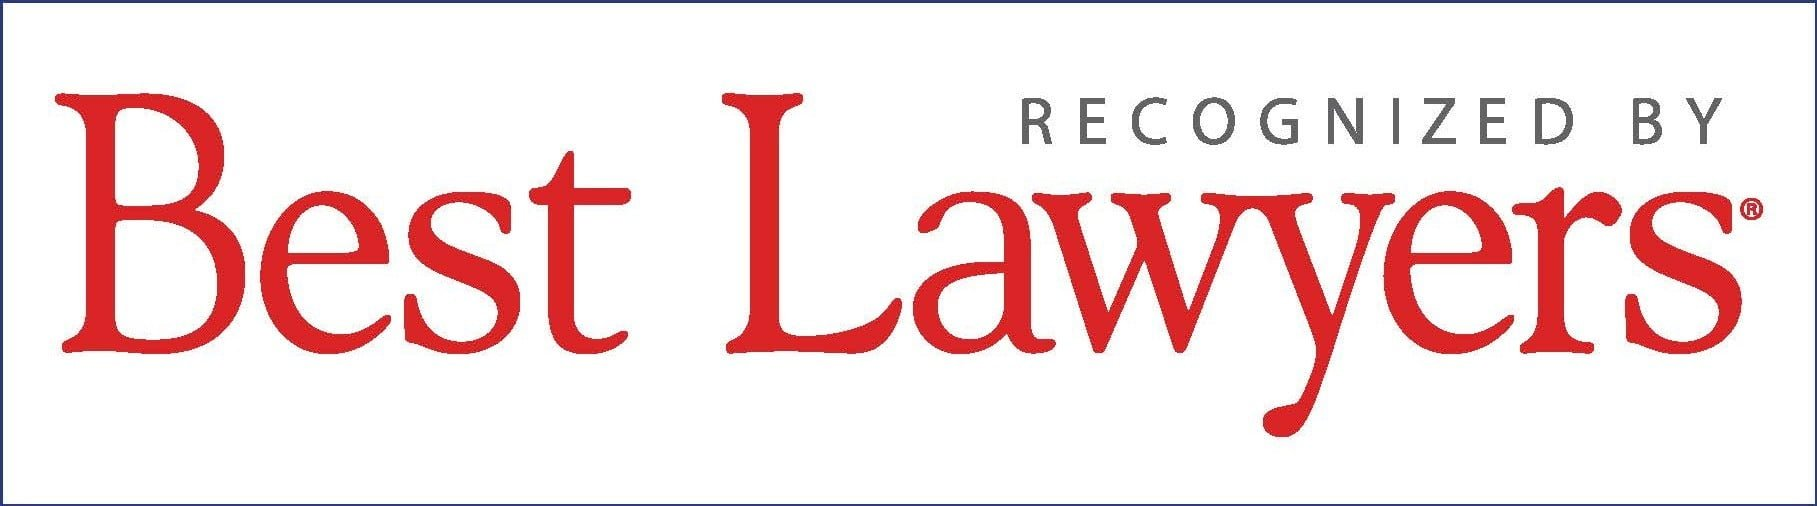 Best Lawyers Logo with colors of Gray and Big Red letters